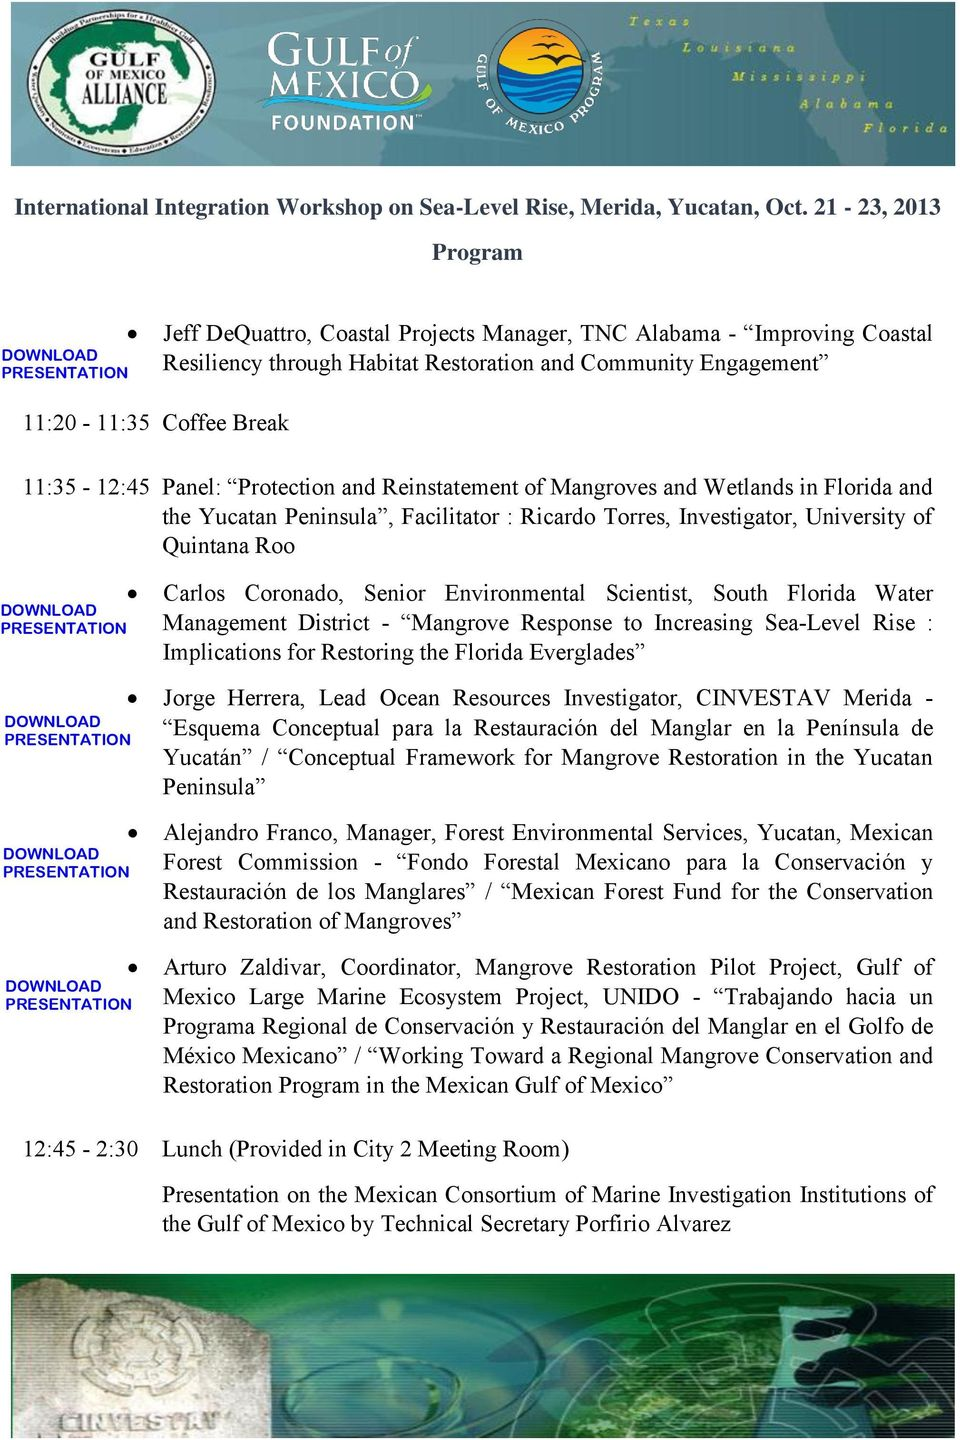 South Florida Water Management District - Mangrove Response to Increasing Sea-Level Rise : Implications for Restoring the Florida Everglades Jorge Herrera, Lead Ocean Resources Investigator,